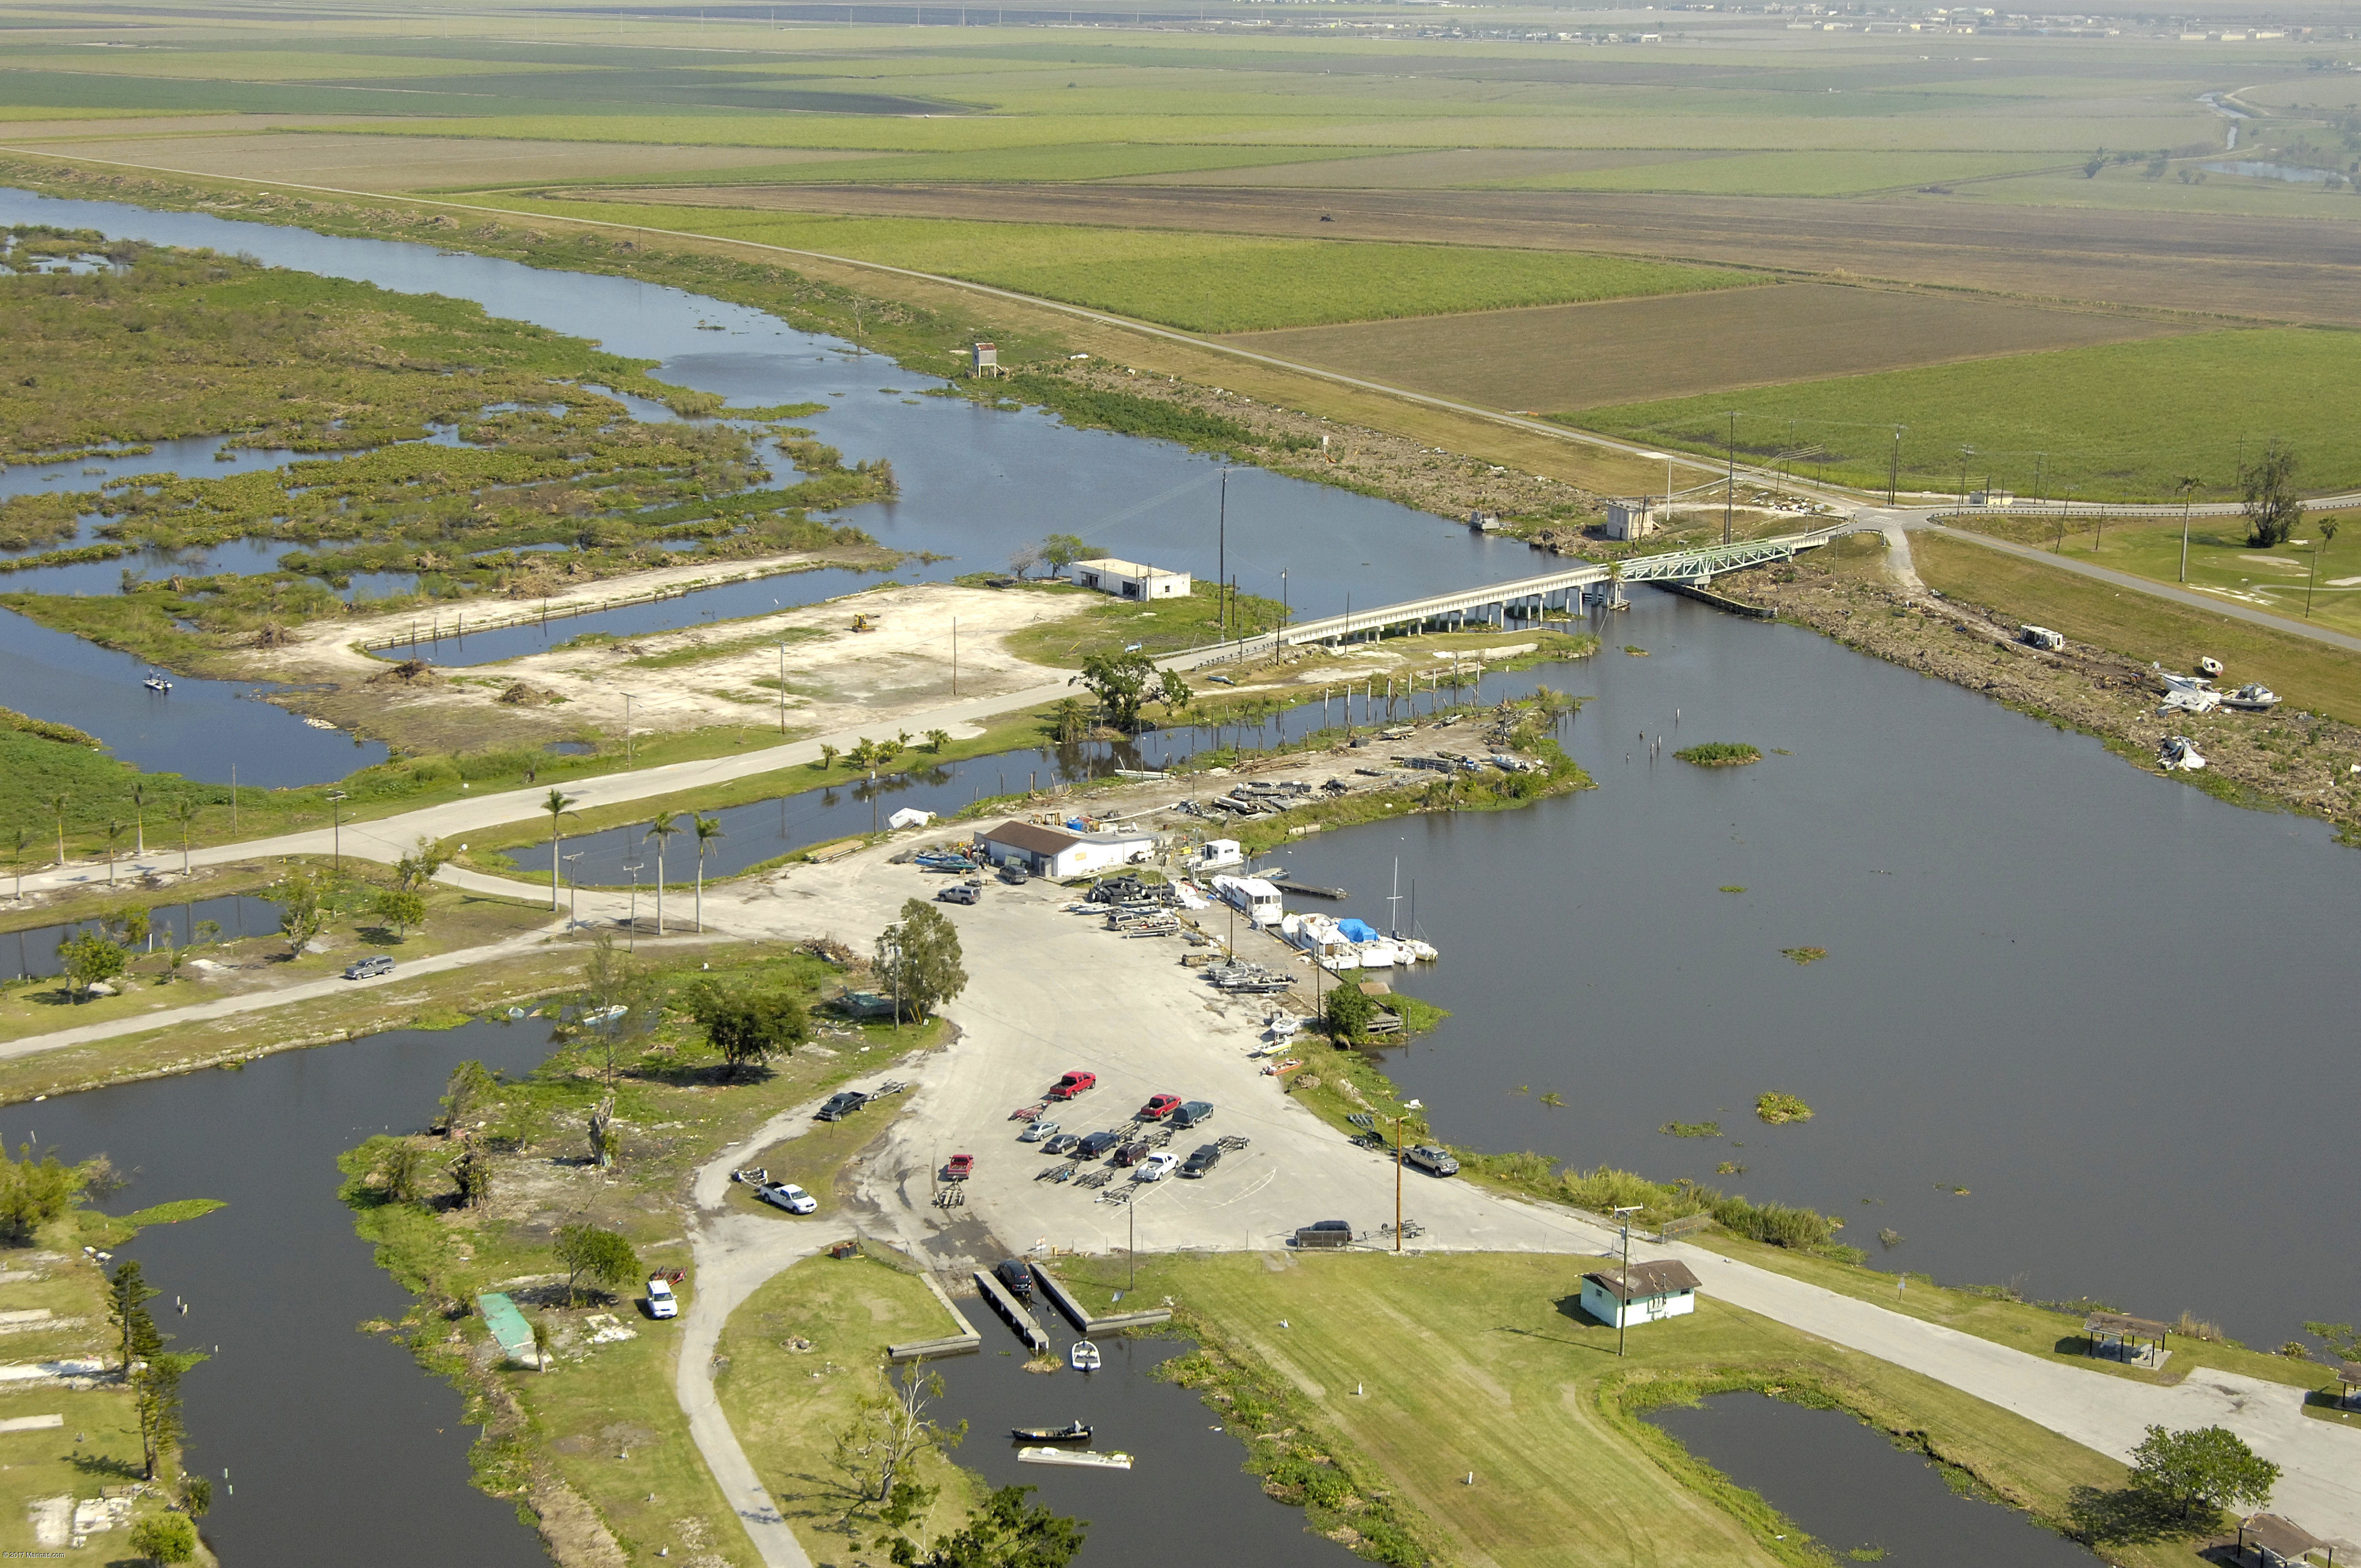 Slim 39 s fish camp in belle glade fl united states for Florida fish camps